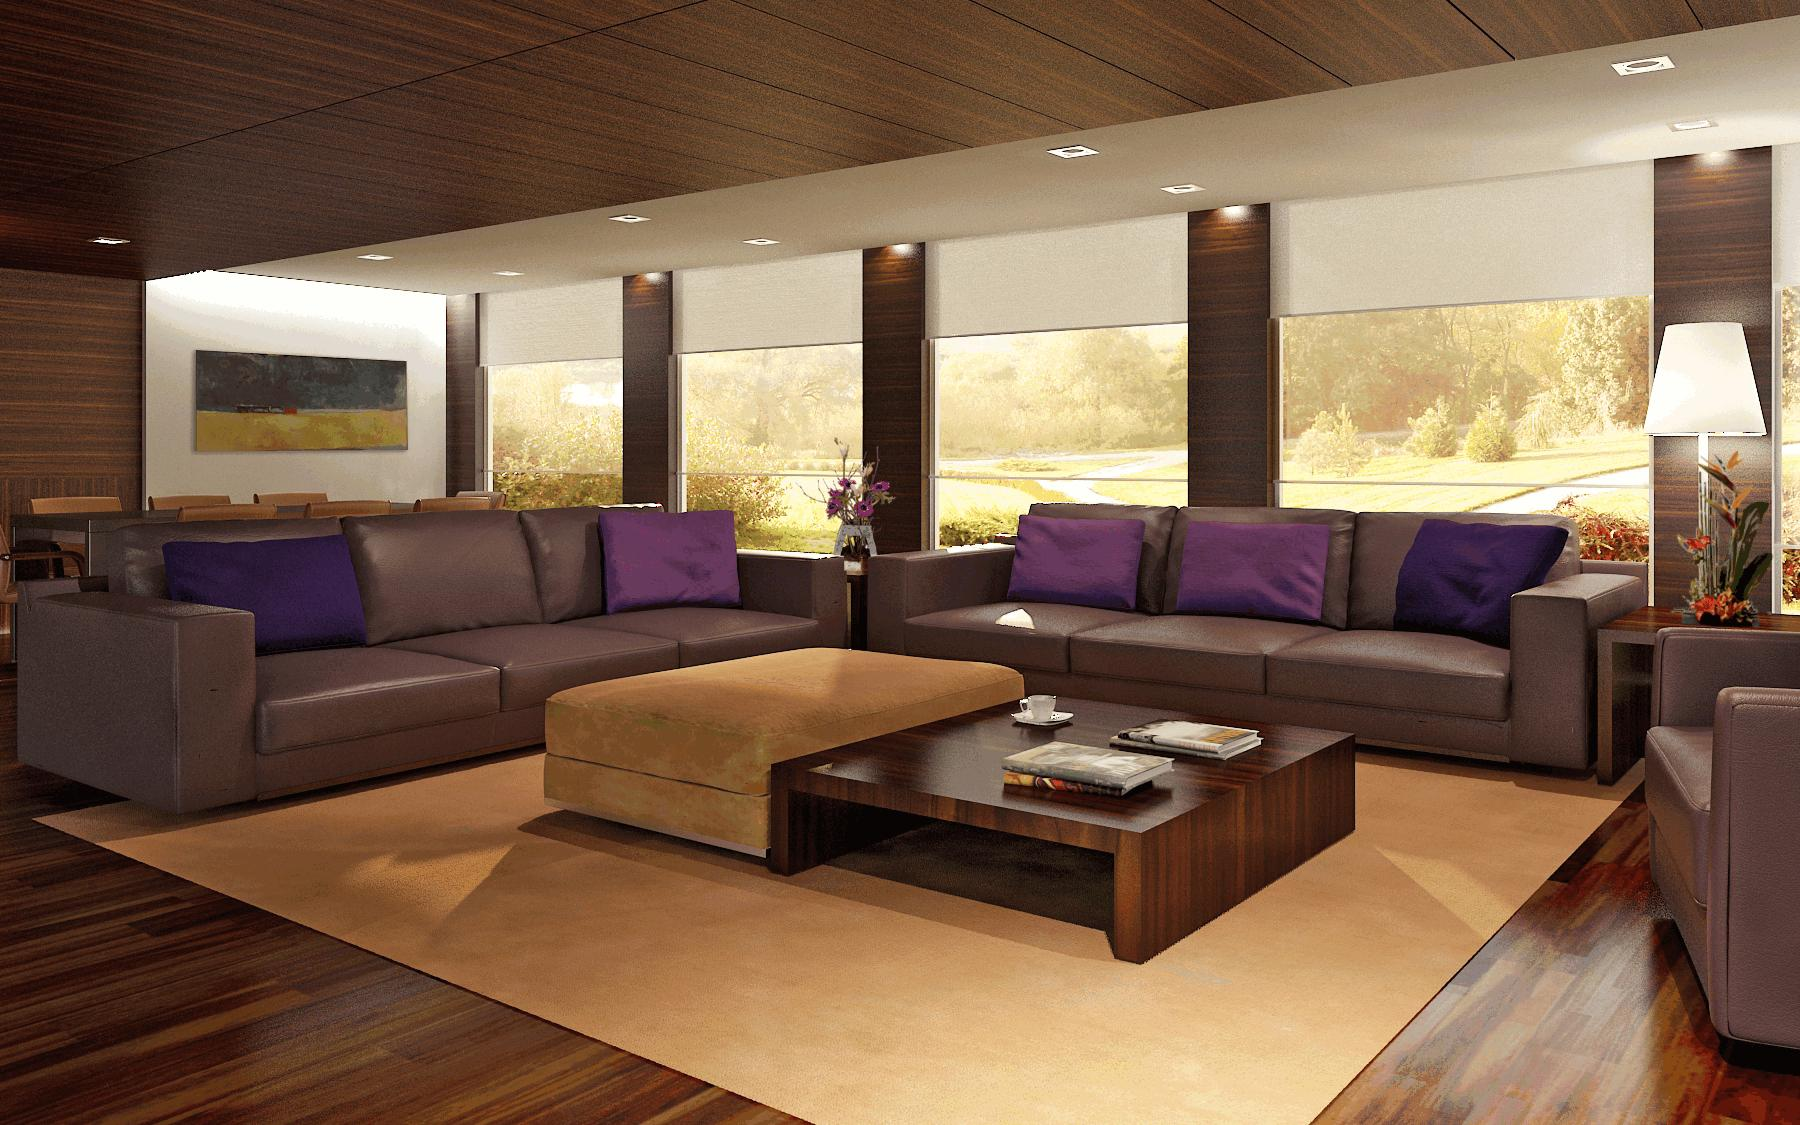 Image Result For Living Room Ideas With Dark Brown Leather Couches